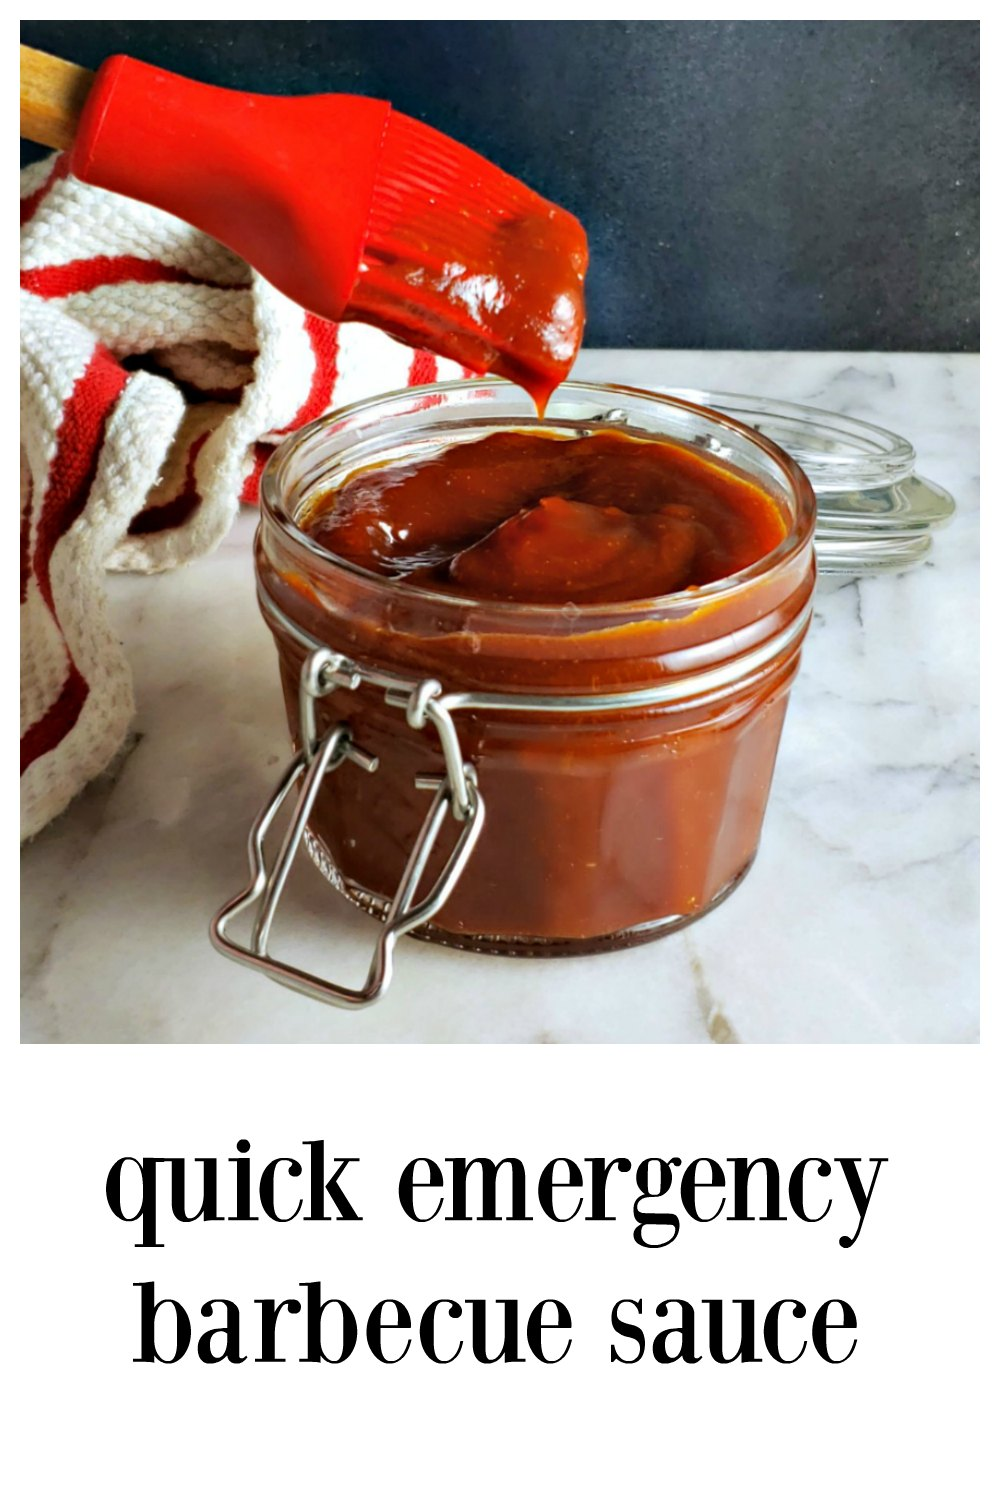 Quick Emergency Barbecue Sauce is easy & fast (with a lot of ingredient options), rich and tangy with just a touch of spicy-sweet. Under 10 minutes to make. #EmergencyBarbecueSauce #QuickBarbecueSauce #BarbecueSauceRecipe #BBQSauce #EmergencyBBQSauce #HomemadeBBQSauce